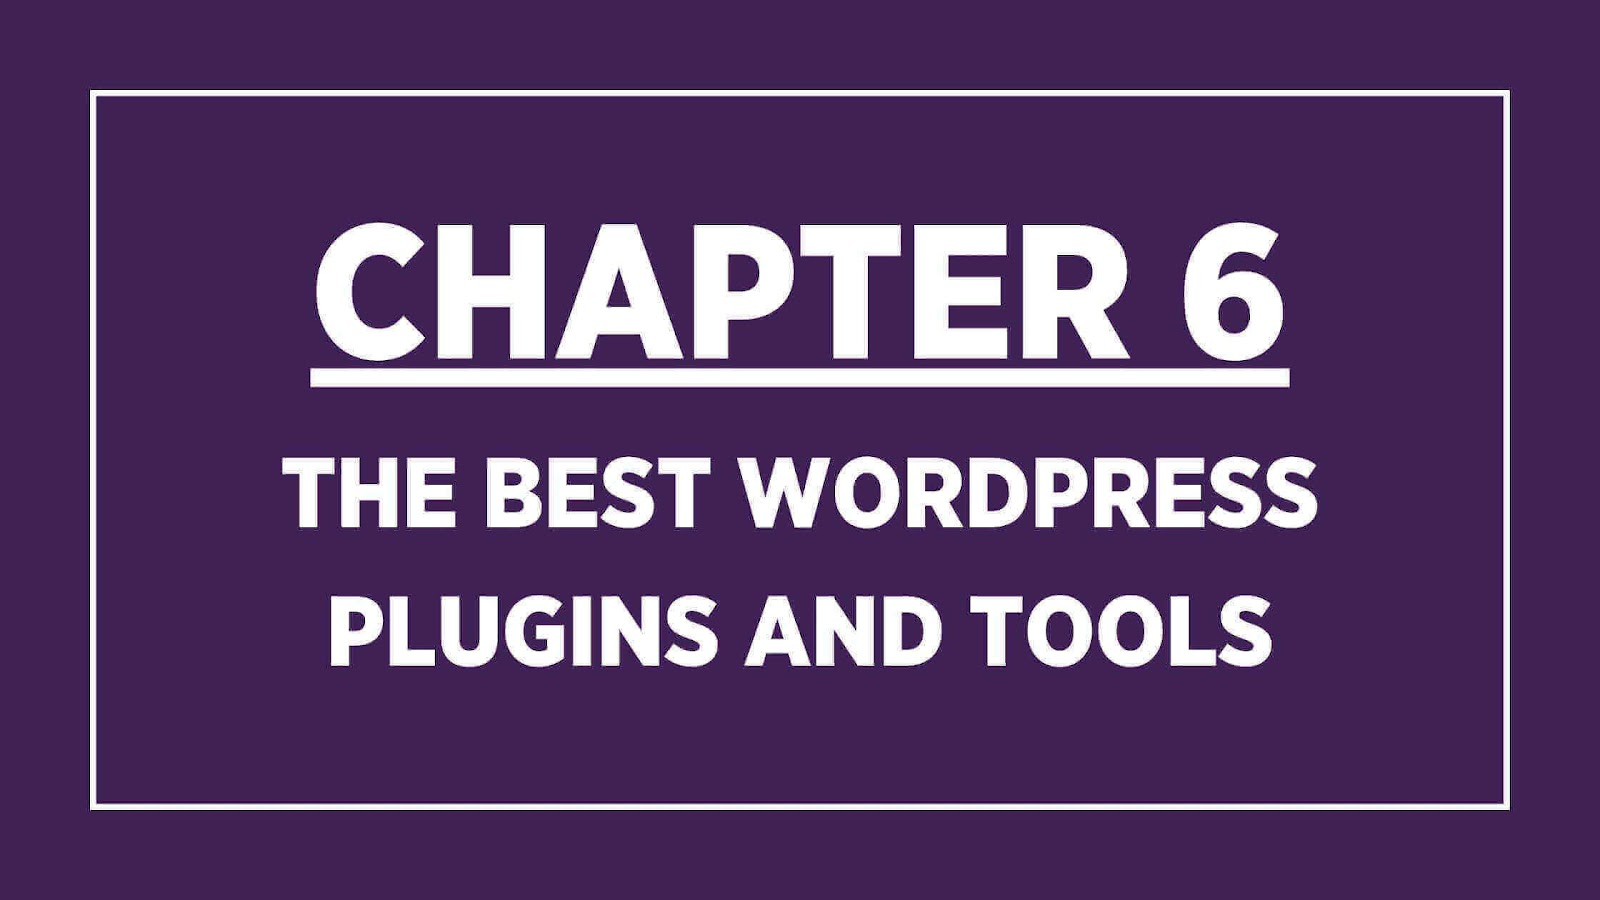 Chapter 6 the best wordpress plugins and tools